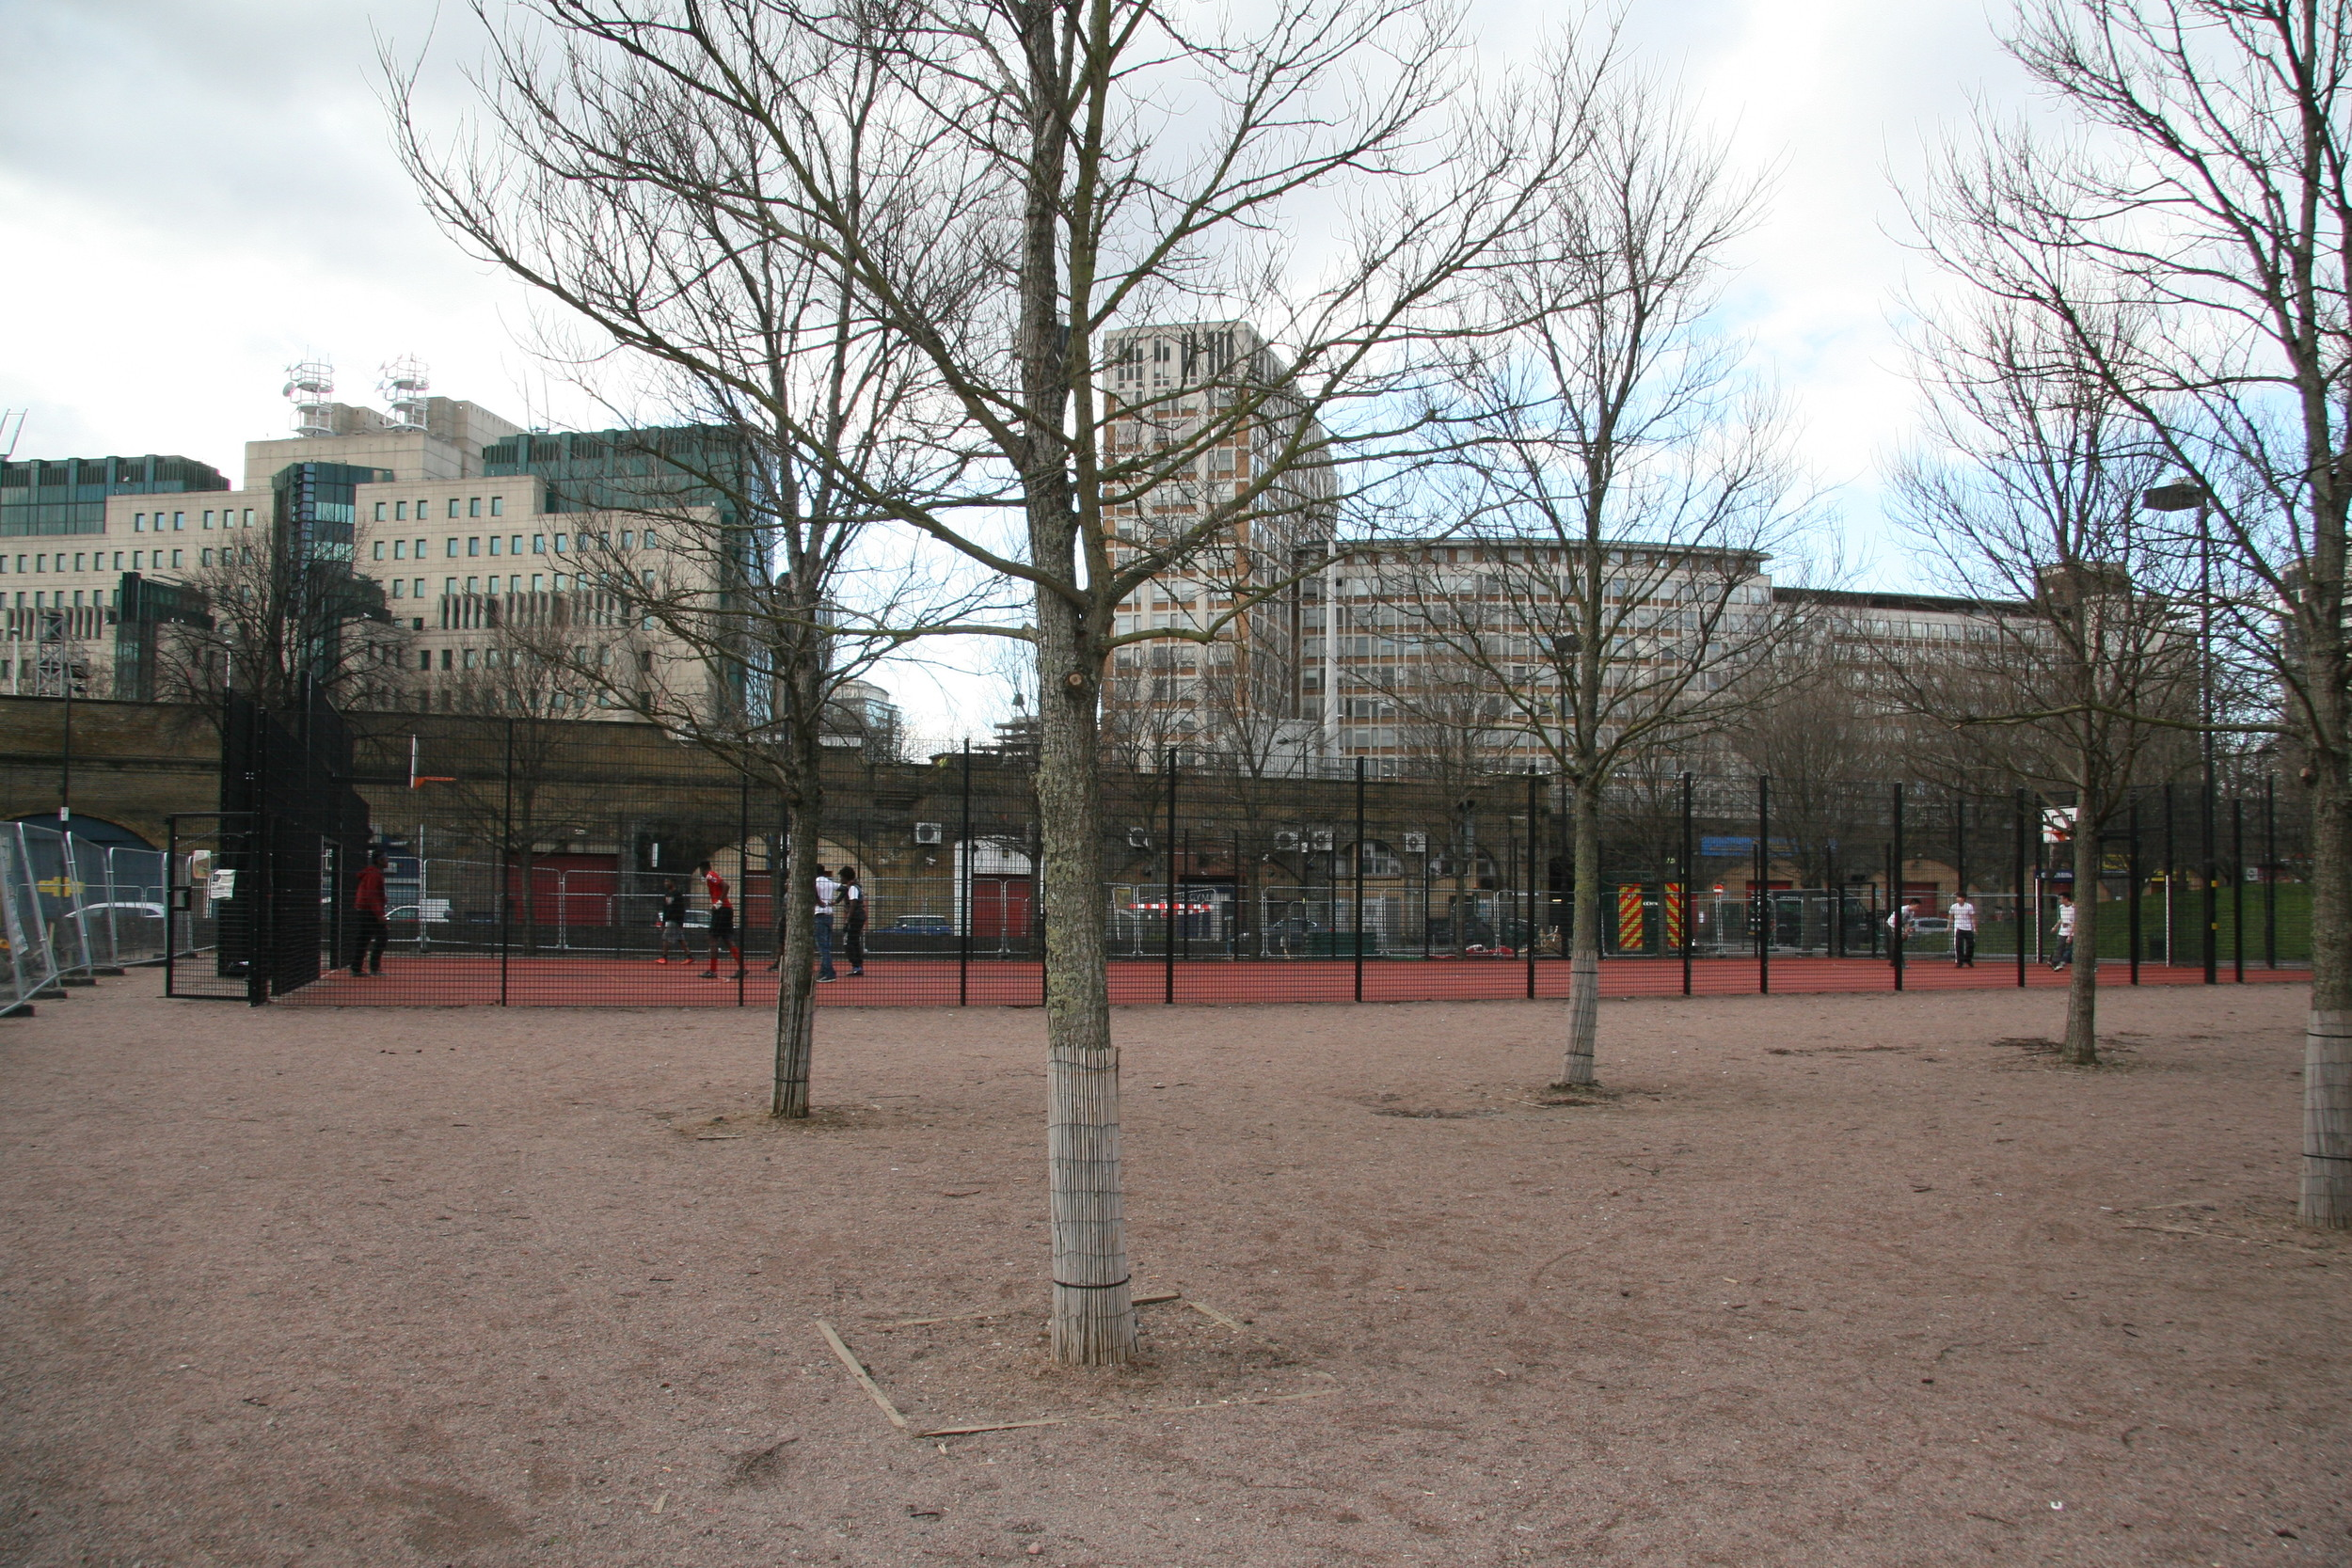 The Elm Square and Multi Use Games Area (2010)